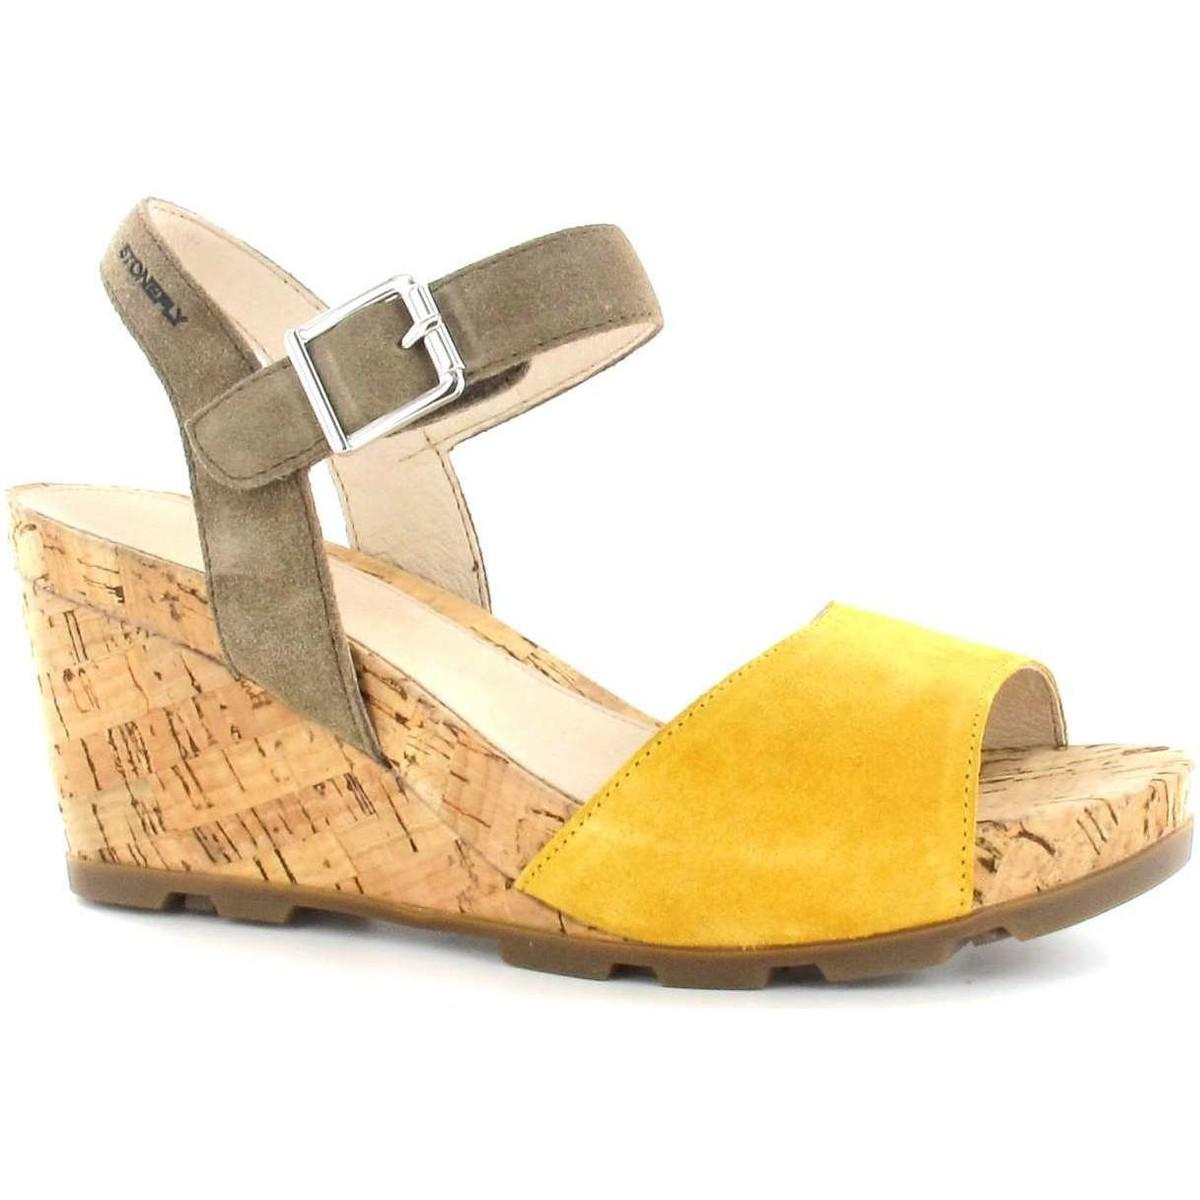 80216cab5ec233 Gallery. Previously sold at  Spartoo · Women s Yellow Shoes Women s Hidden  Wedges ...